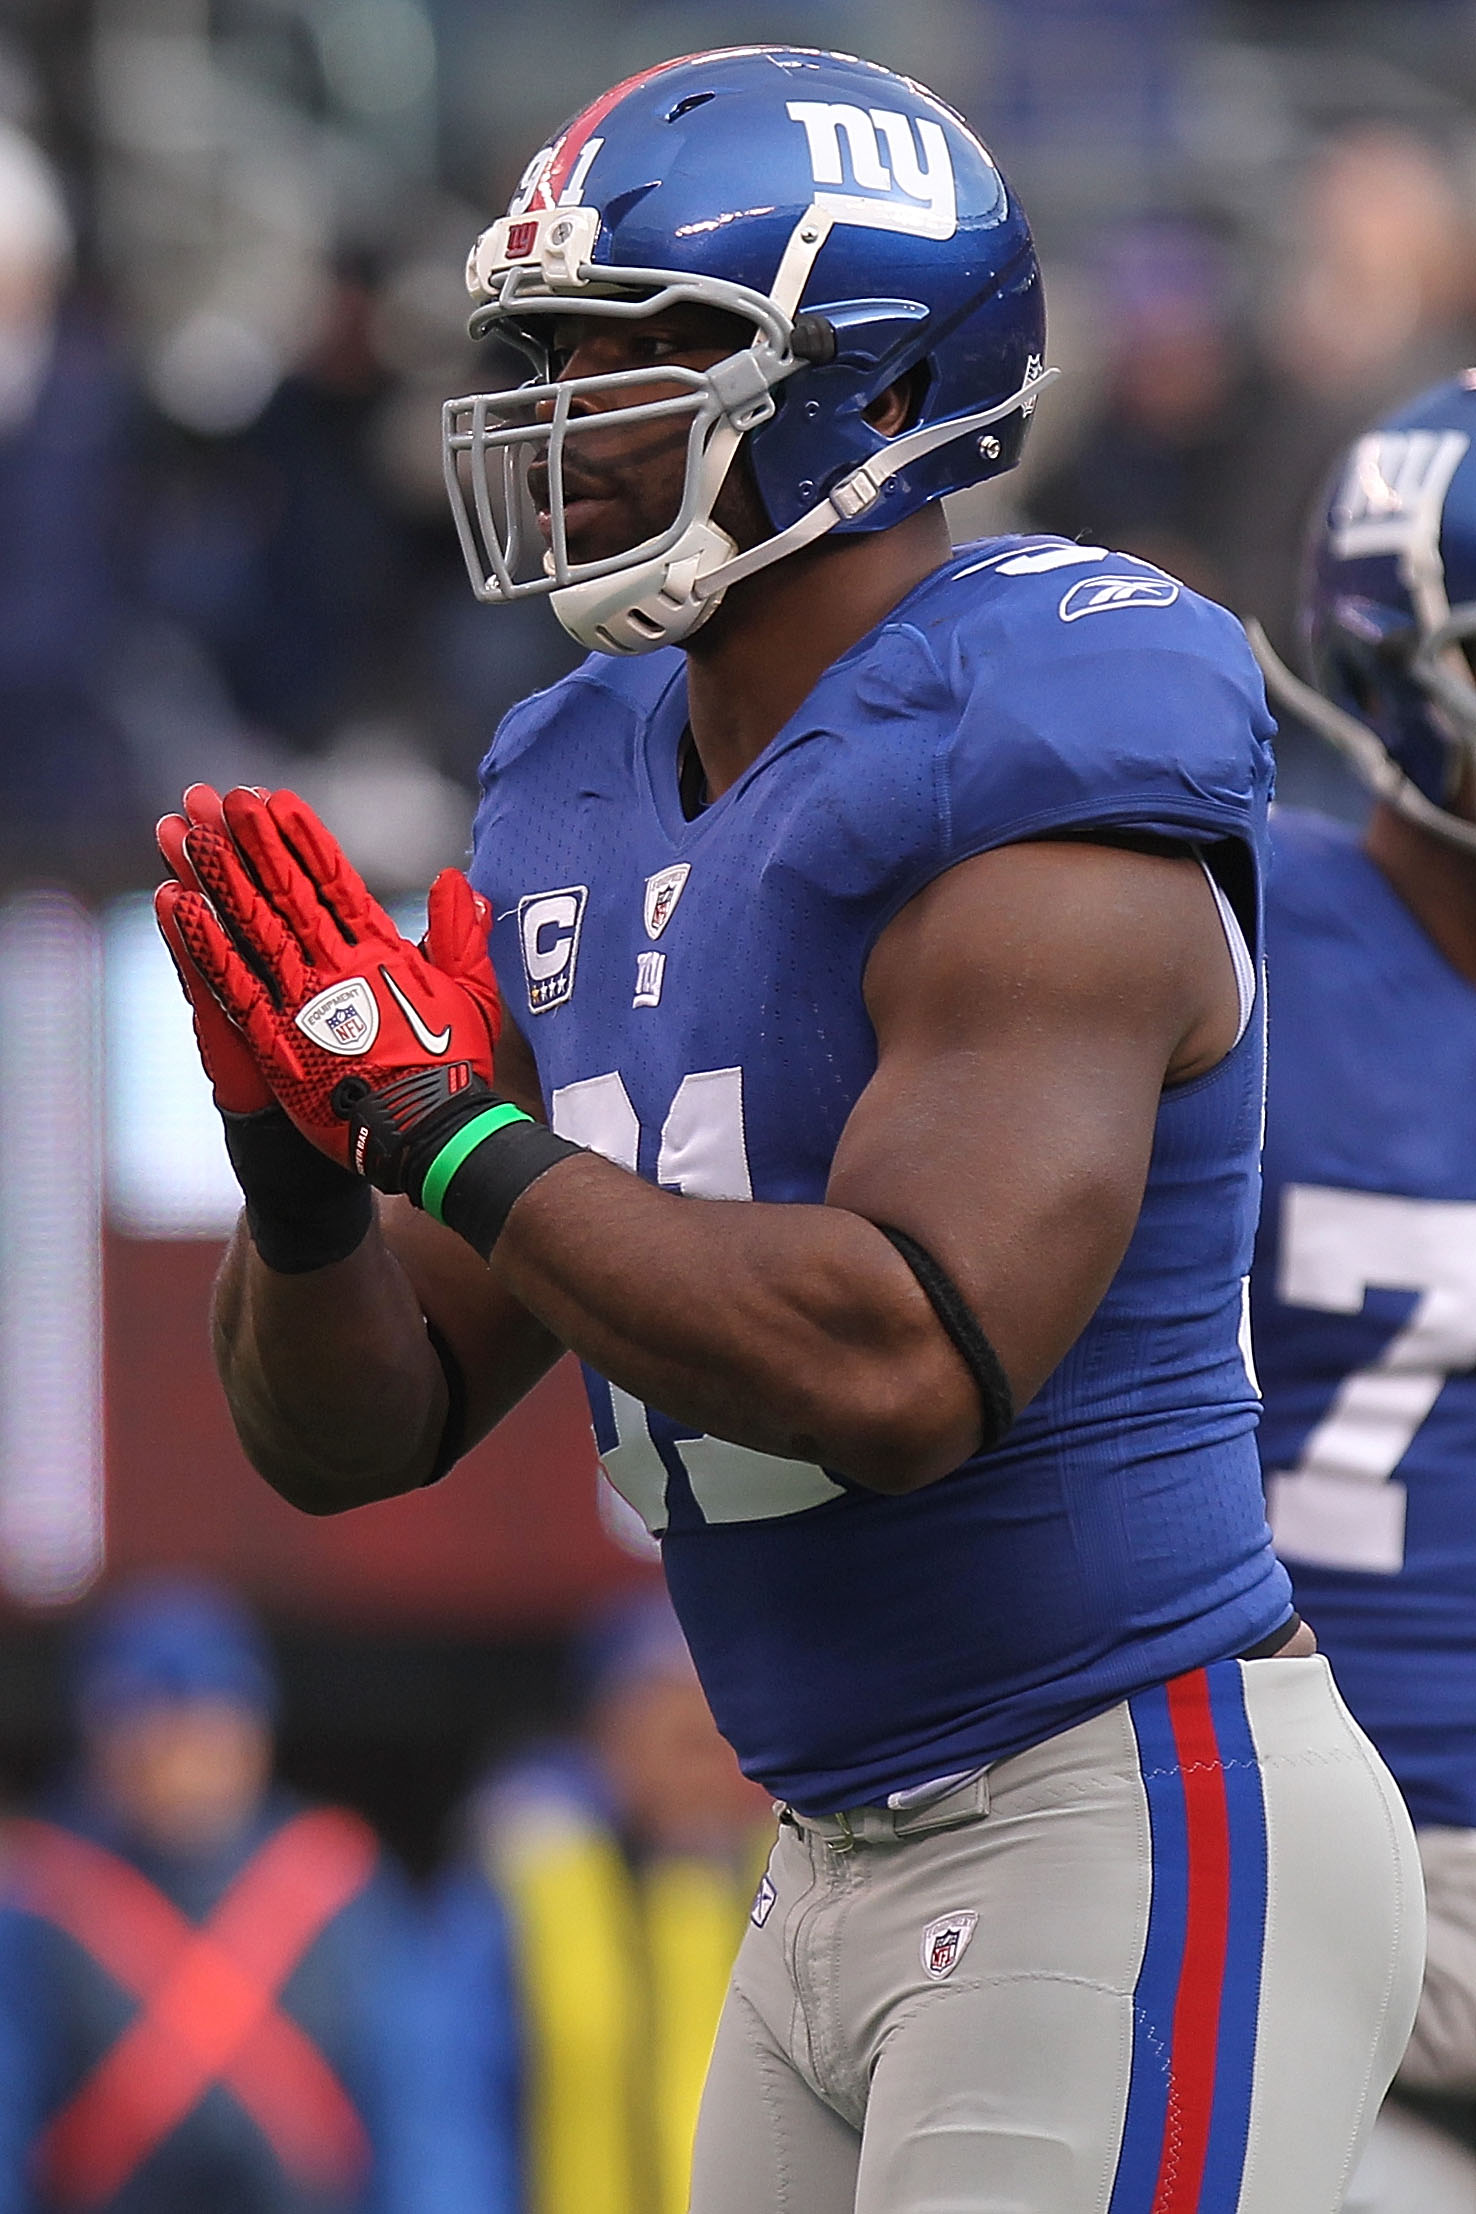 EAST RUTHERFORD, NJ - DECEMBER 19:  Justin Tuck #91 of the New York Giants celebrates sacking Michael Vick #7 of the Philadelphia Eagles at New Meadowlands Stadium on December 19, 2010 in East Rutherford, New Jersey.  (Photo by Nick Laham/Getty Images)